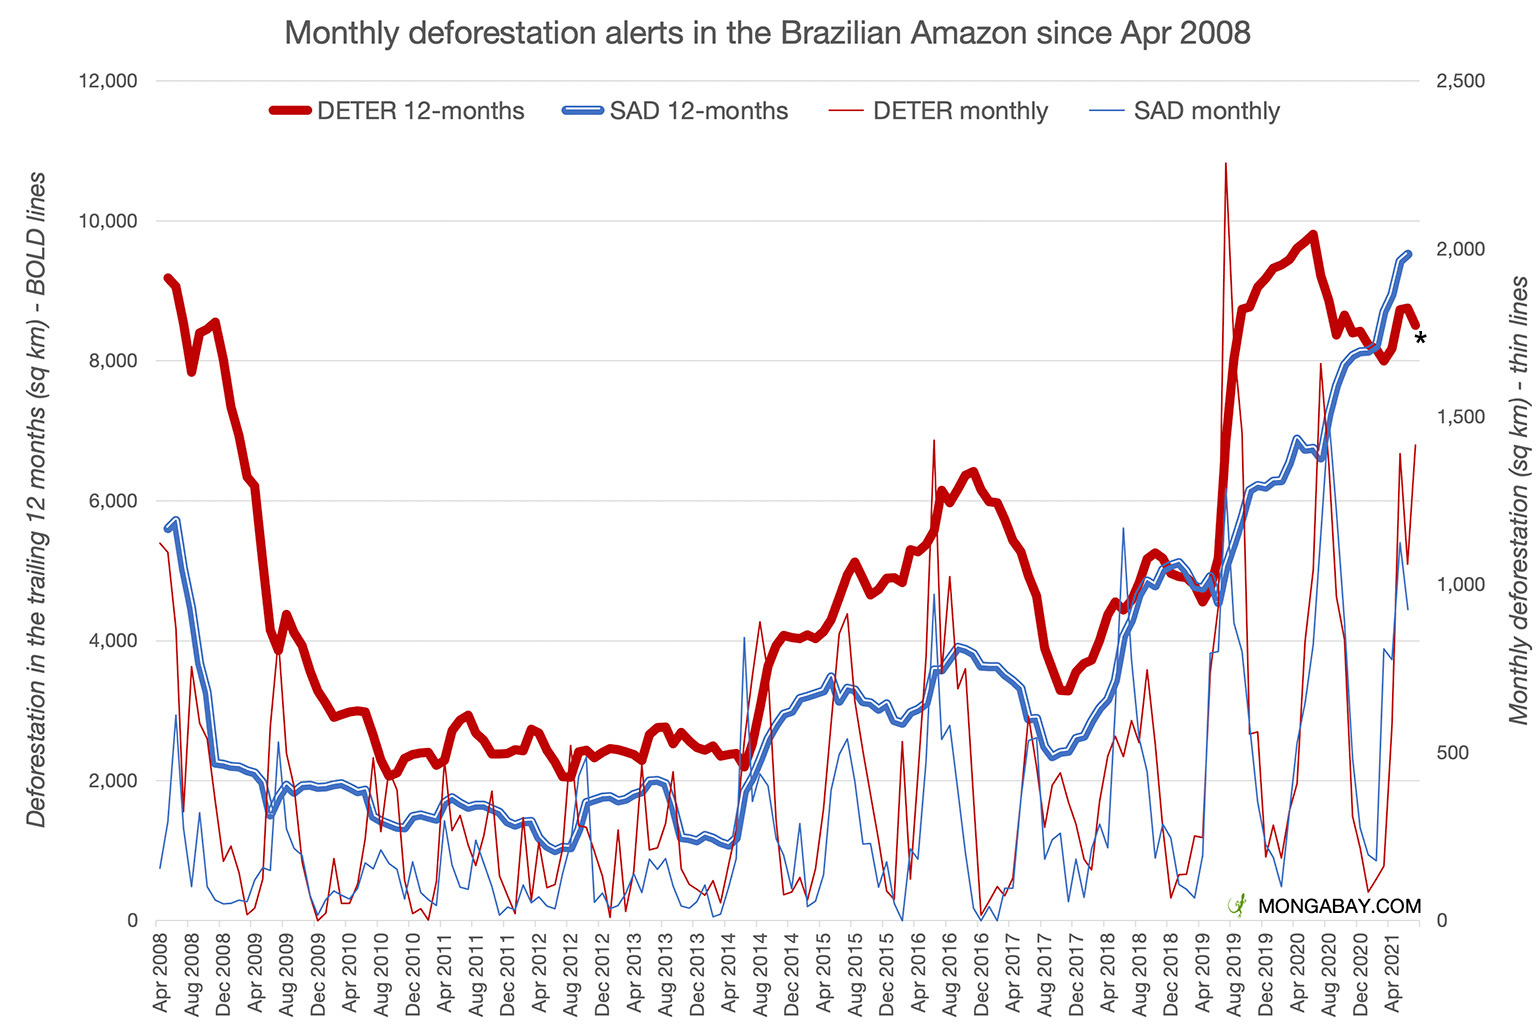 Deforestation alert data from INPE and Imazon. Note: July 2021 data is only through July 30 for INPE and not yet available from Imazon, a group that independently tracks deforestation.